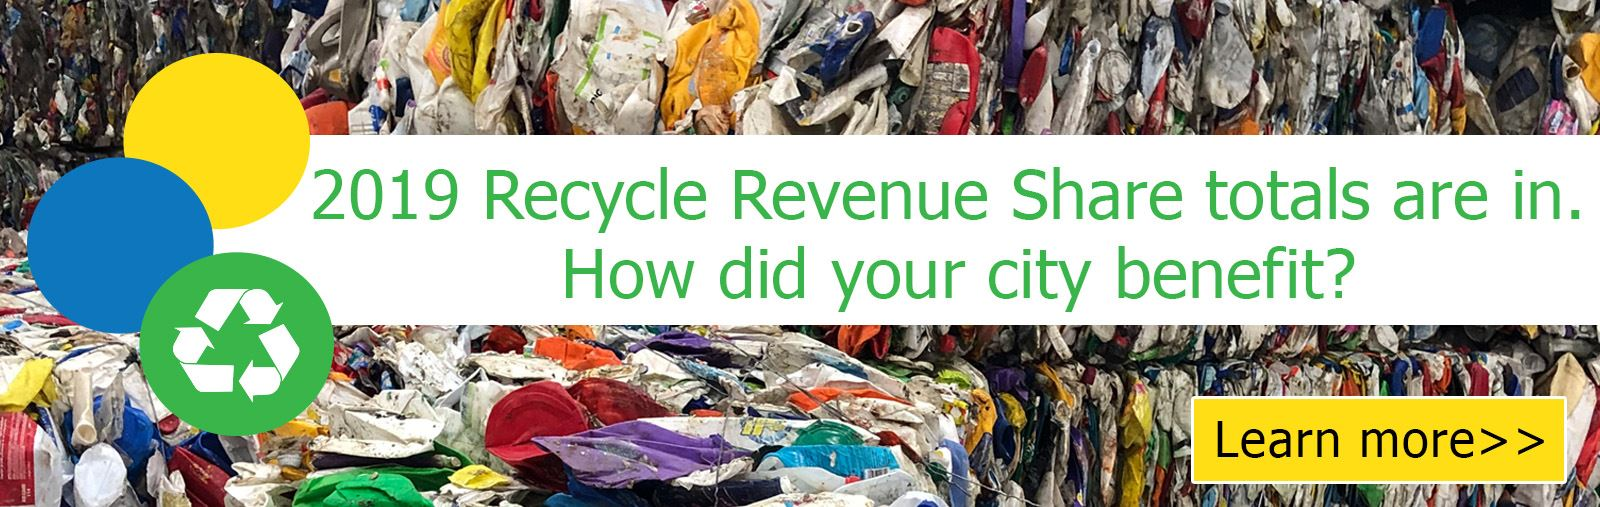 2019 Recycle Revenue Share Totals Banner